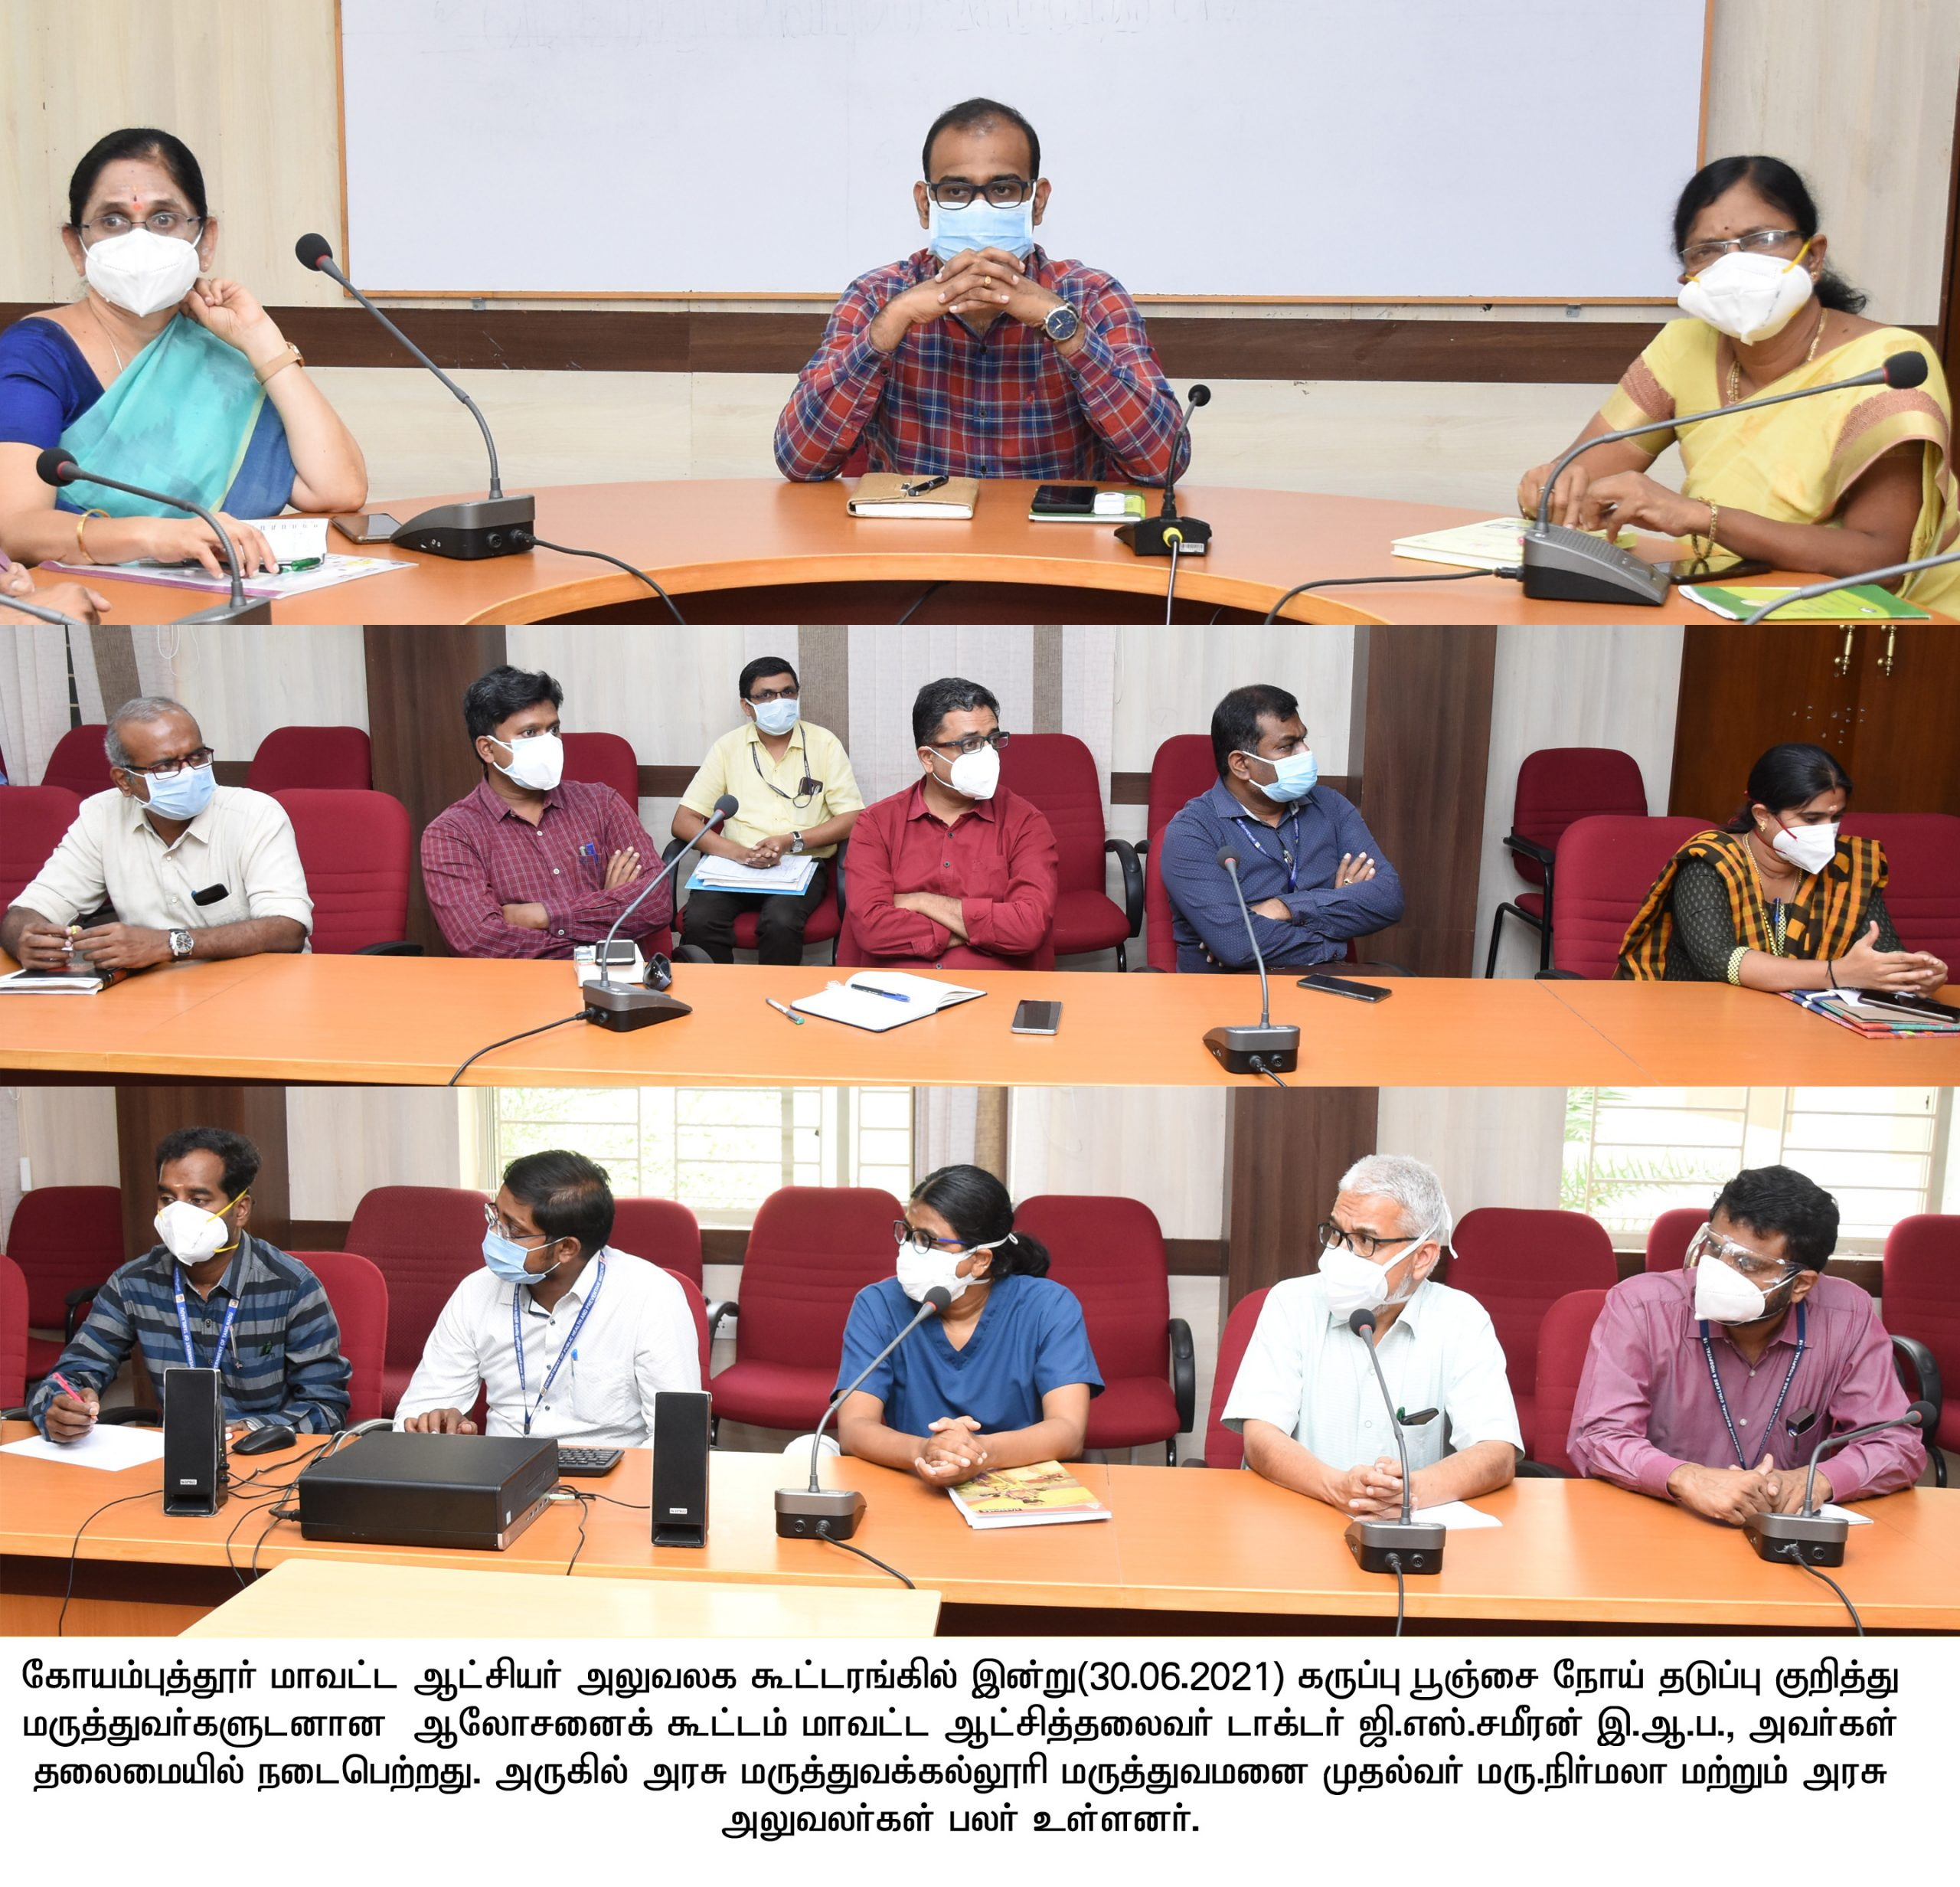 Black Fungus Diease prevention work review meeting was conducted by the District Collector